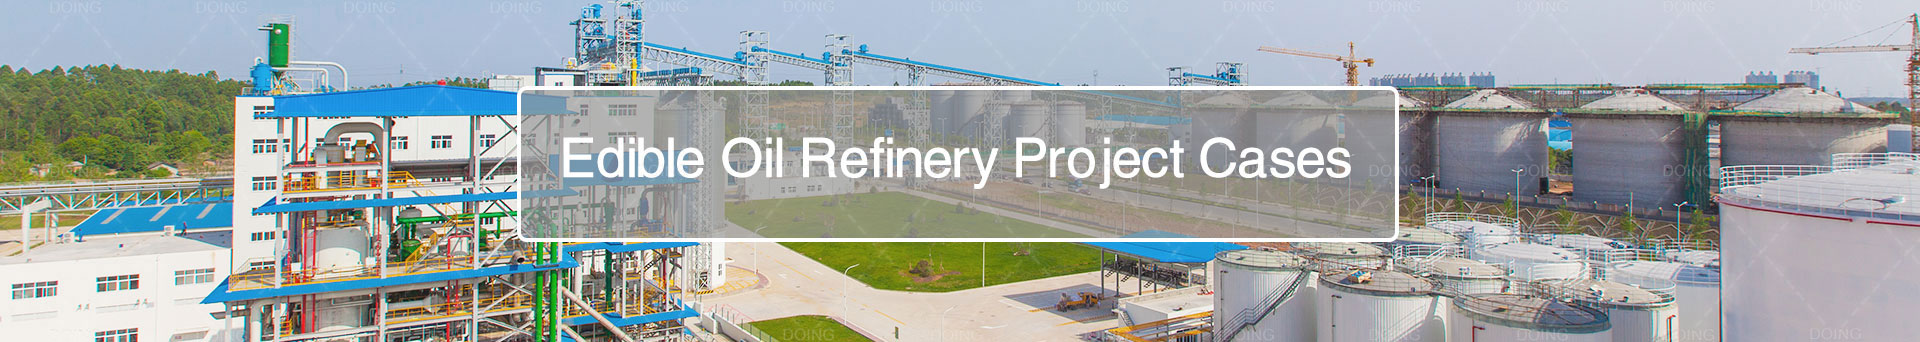 edible oil refinery plant project